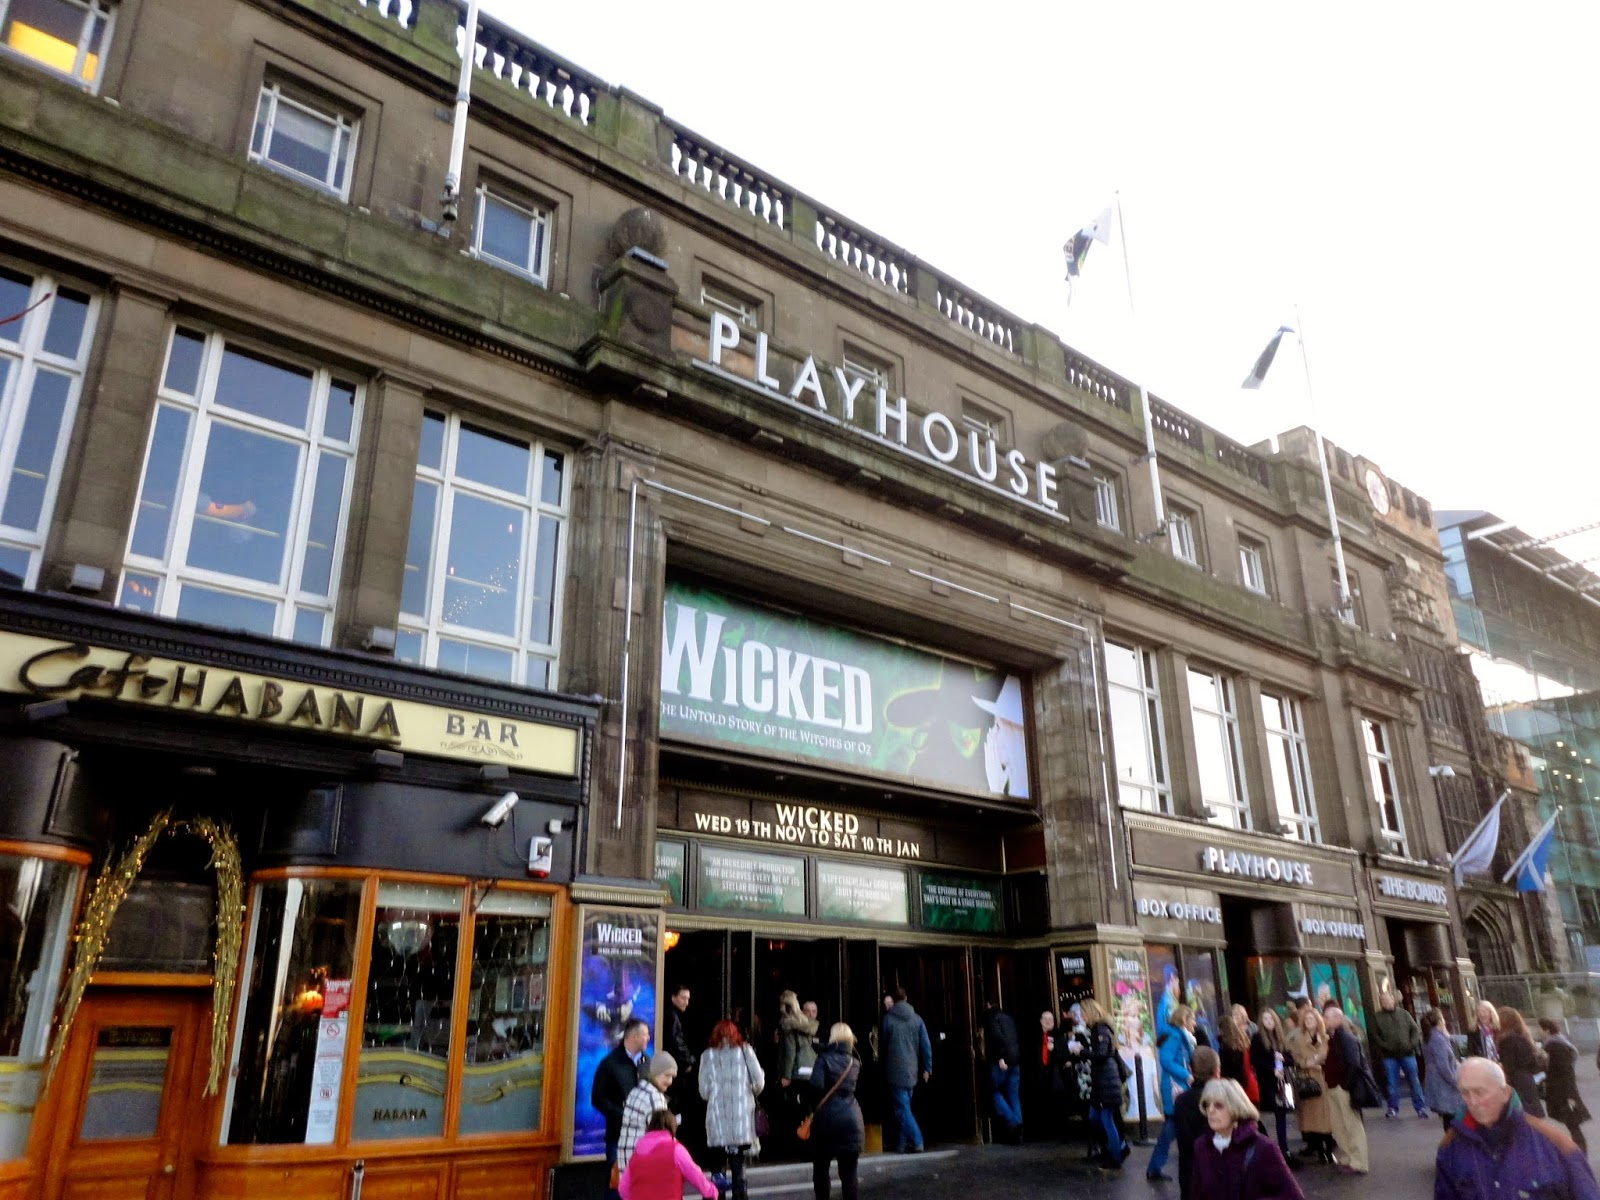 Exterior of Edinburgh Playhouse theatre, showing Wicked the Musical